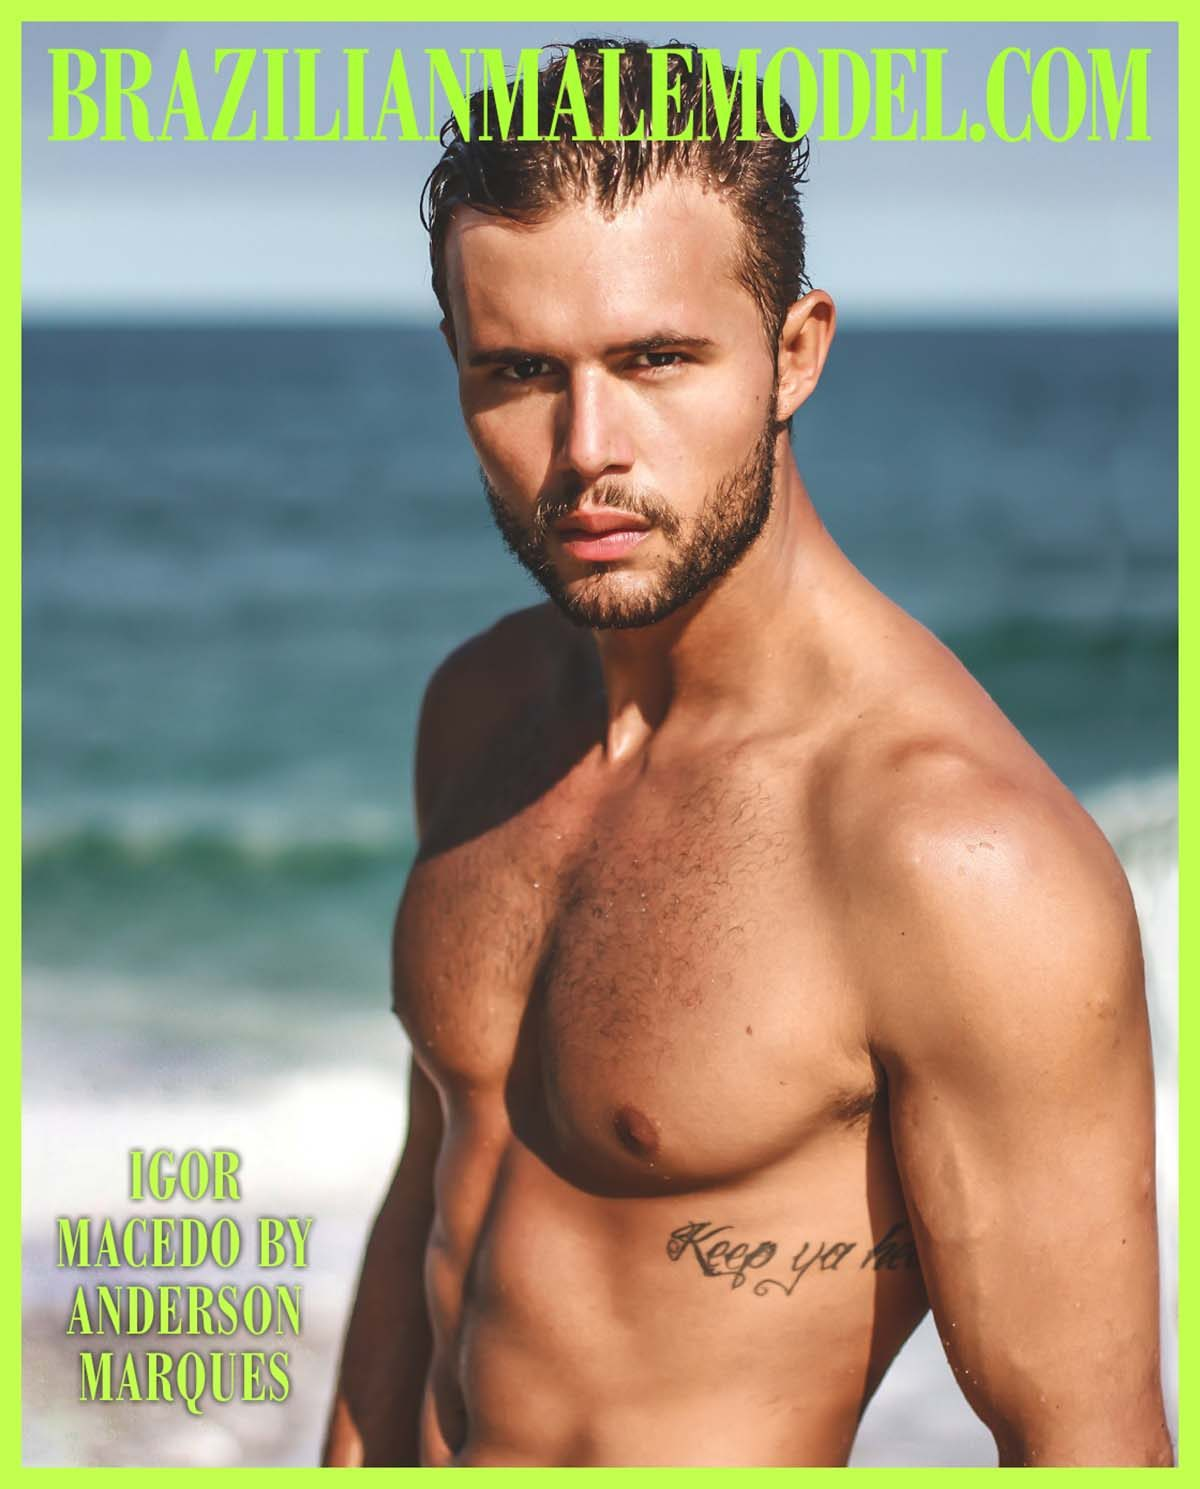 Igor Macedo by Anderson Marques